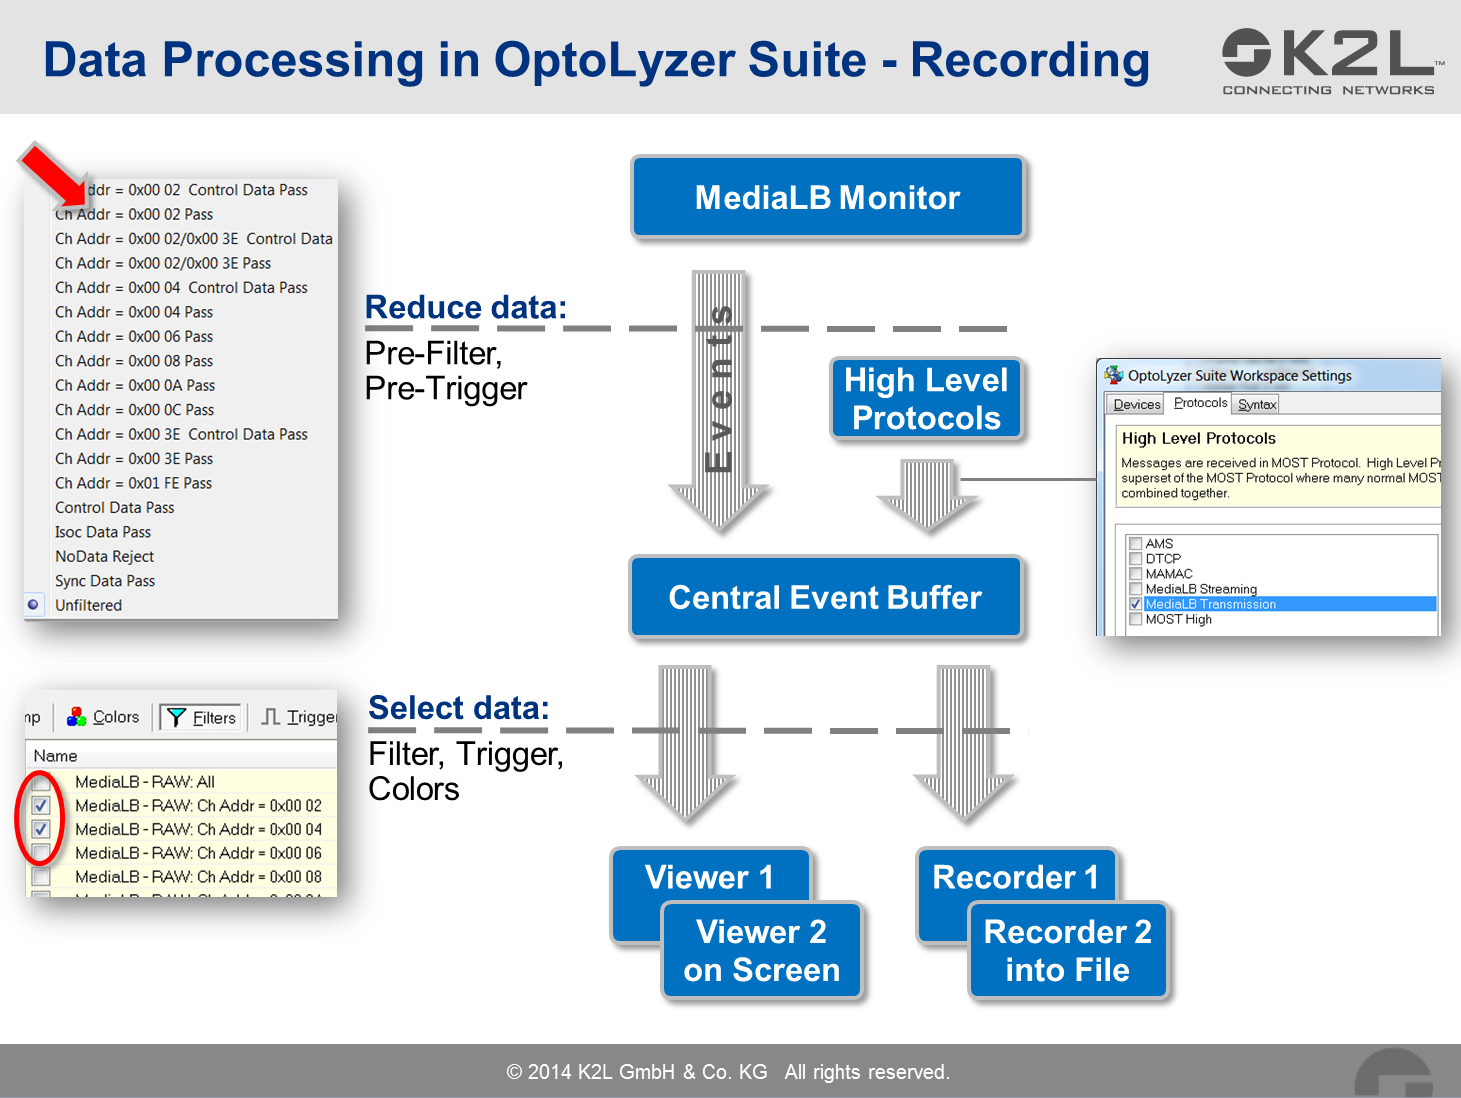 Data-Processing-in-OptoLyzer-Suite-Recording.PNG